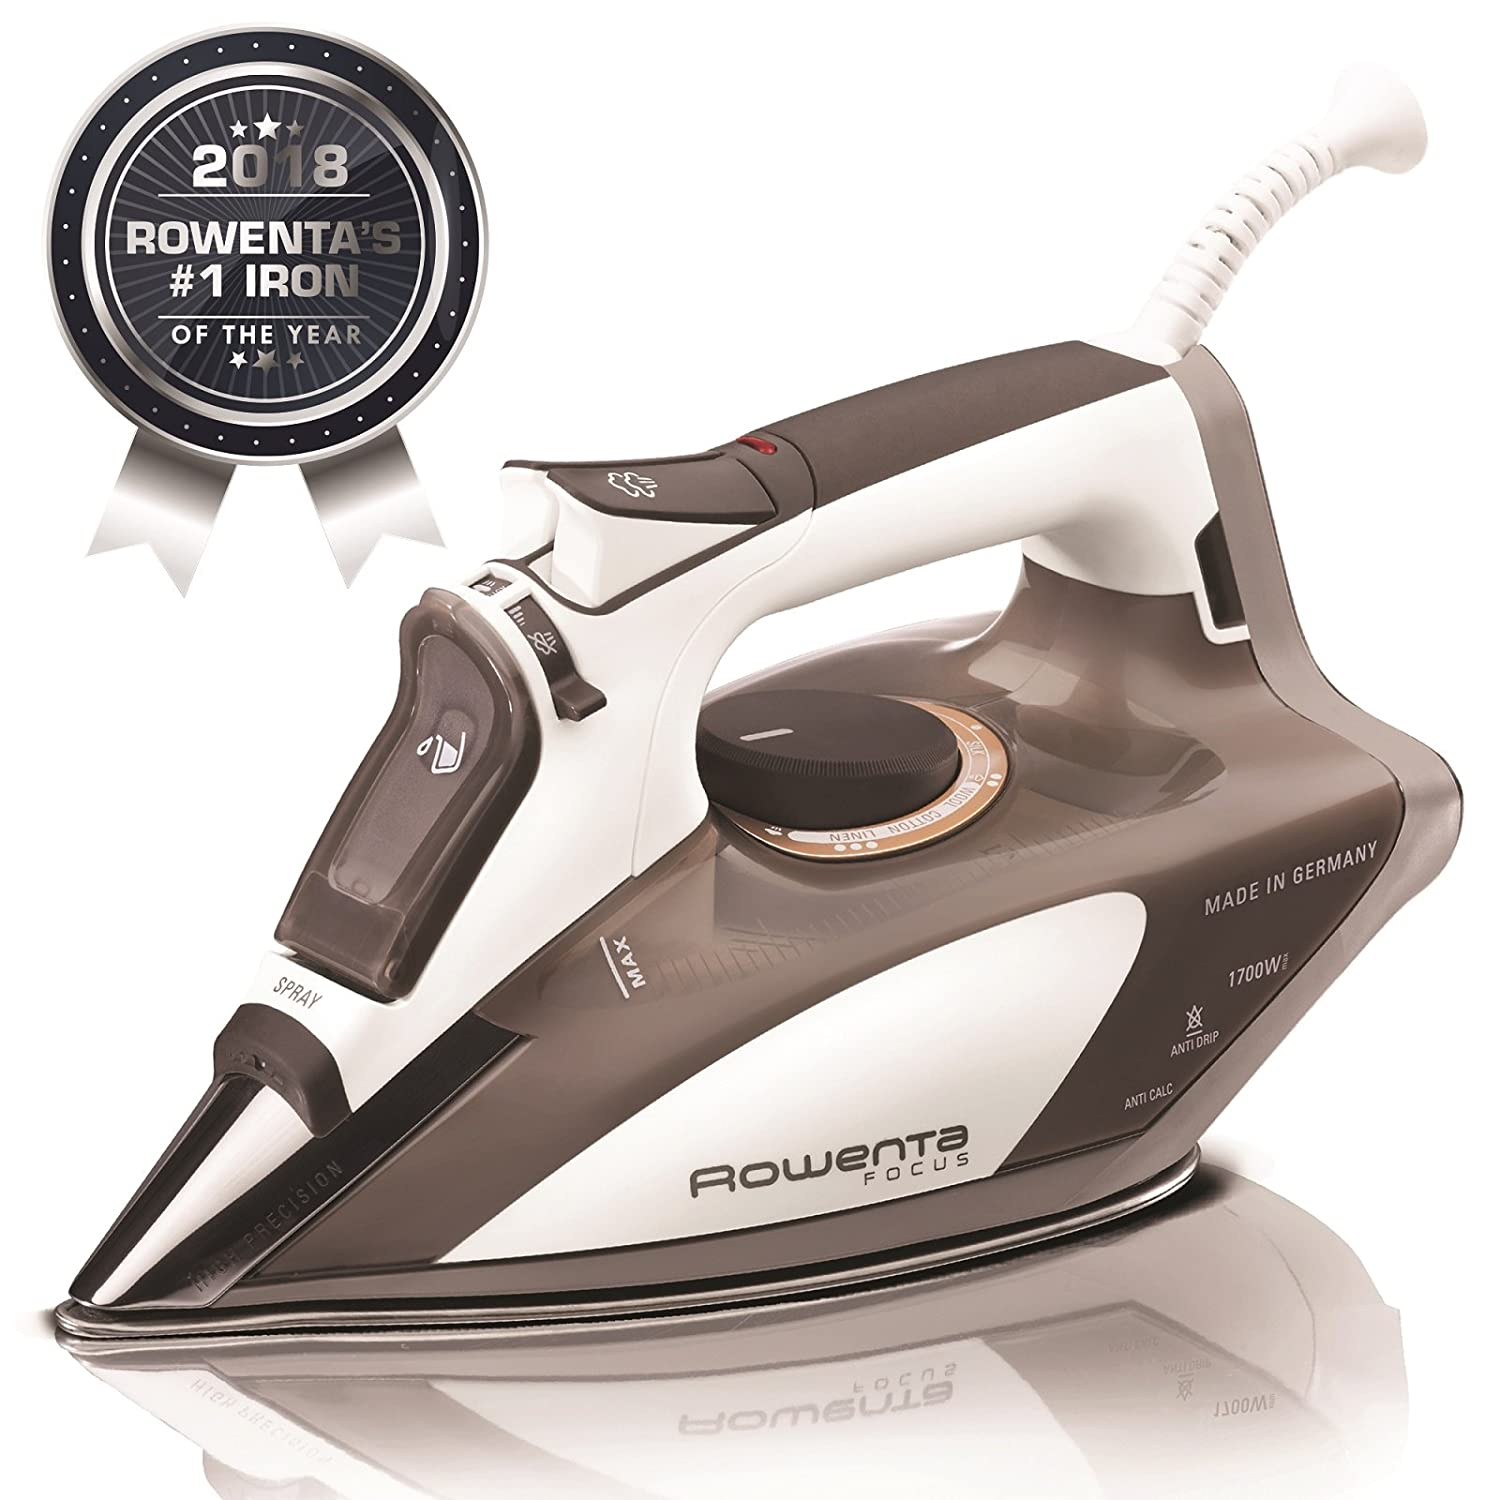 cheap rowenta dw5080